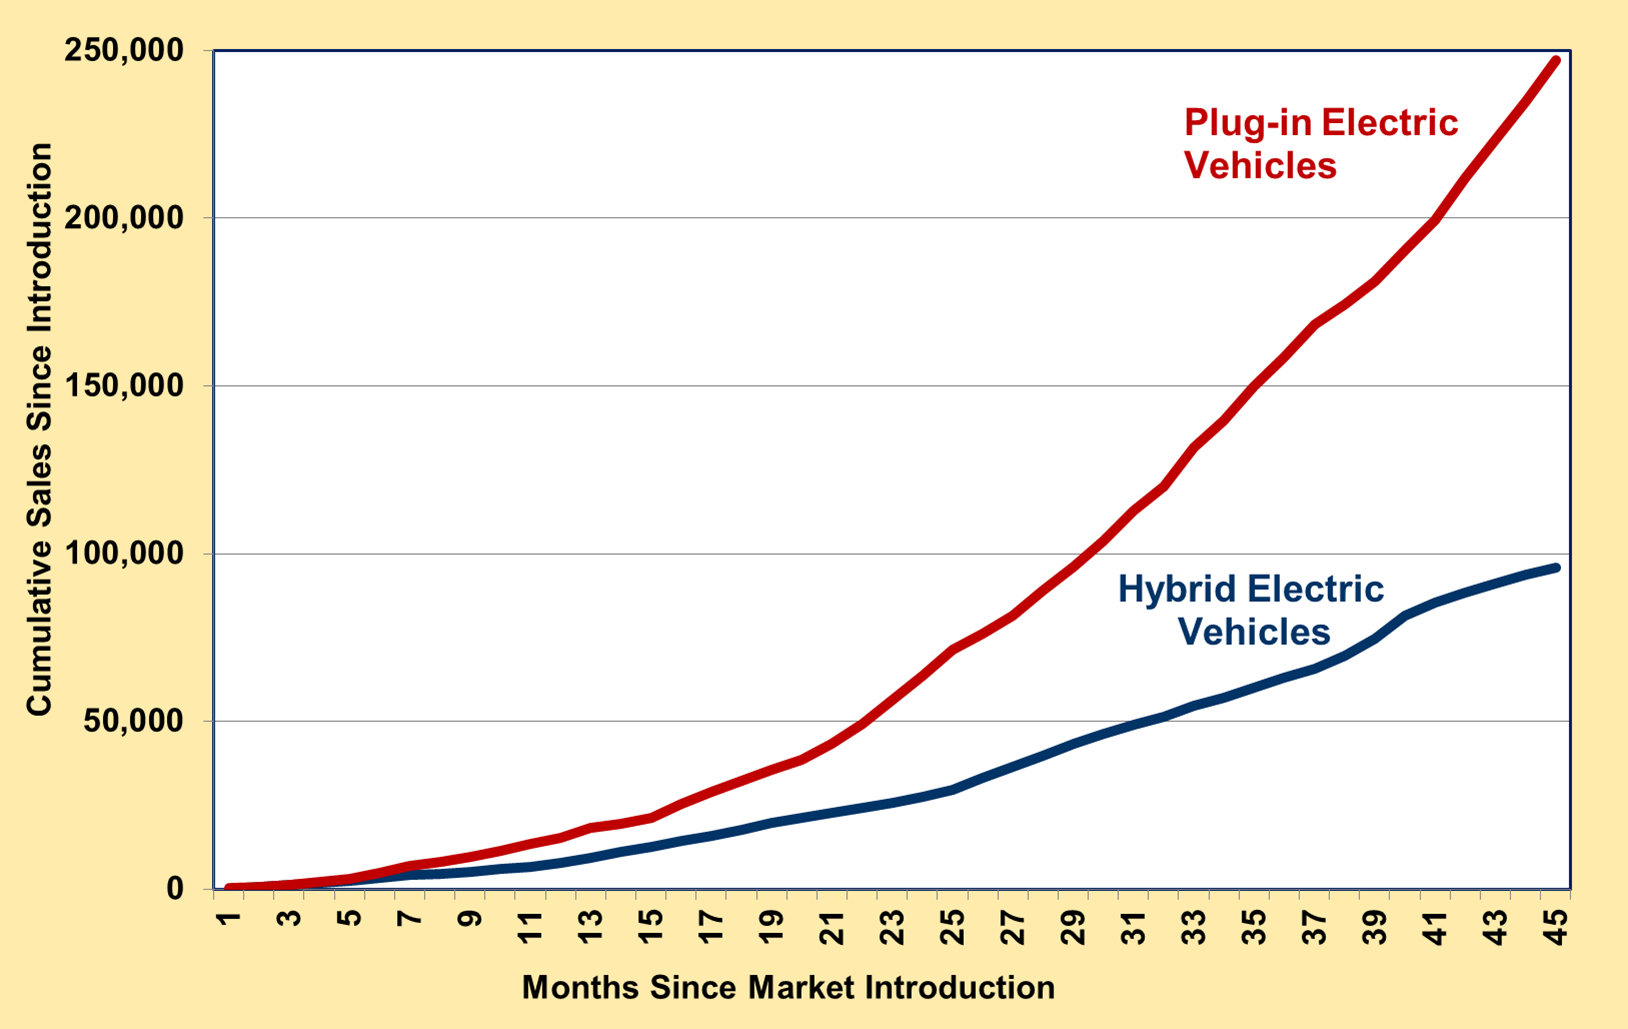 Graph showing cumulative sales for plug-in electric vehicles and hybrid vehicles in the first 45 months since market introduction.